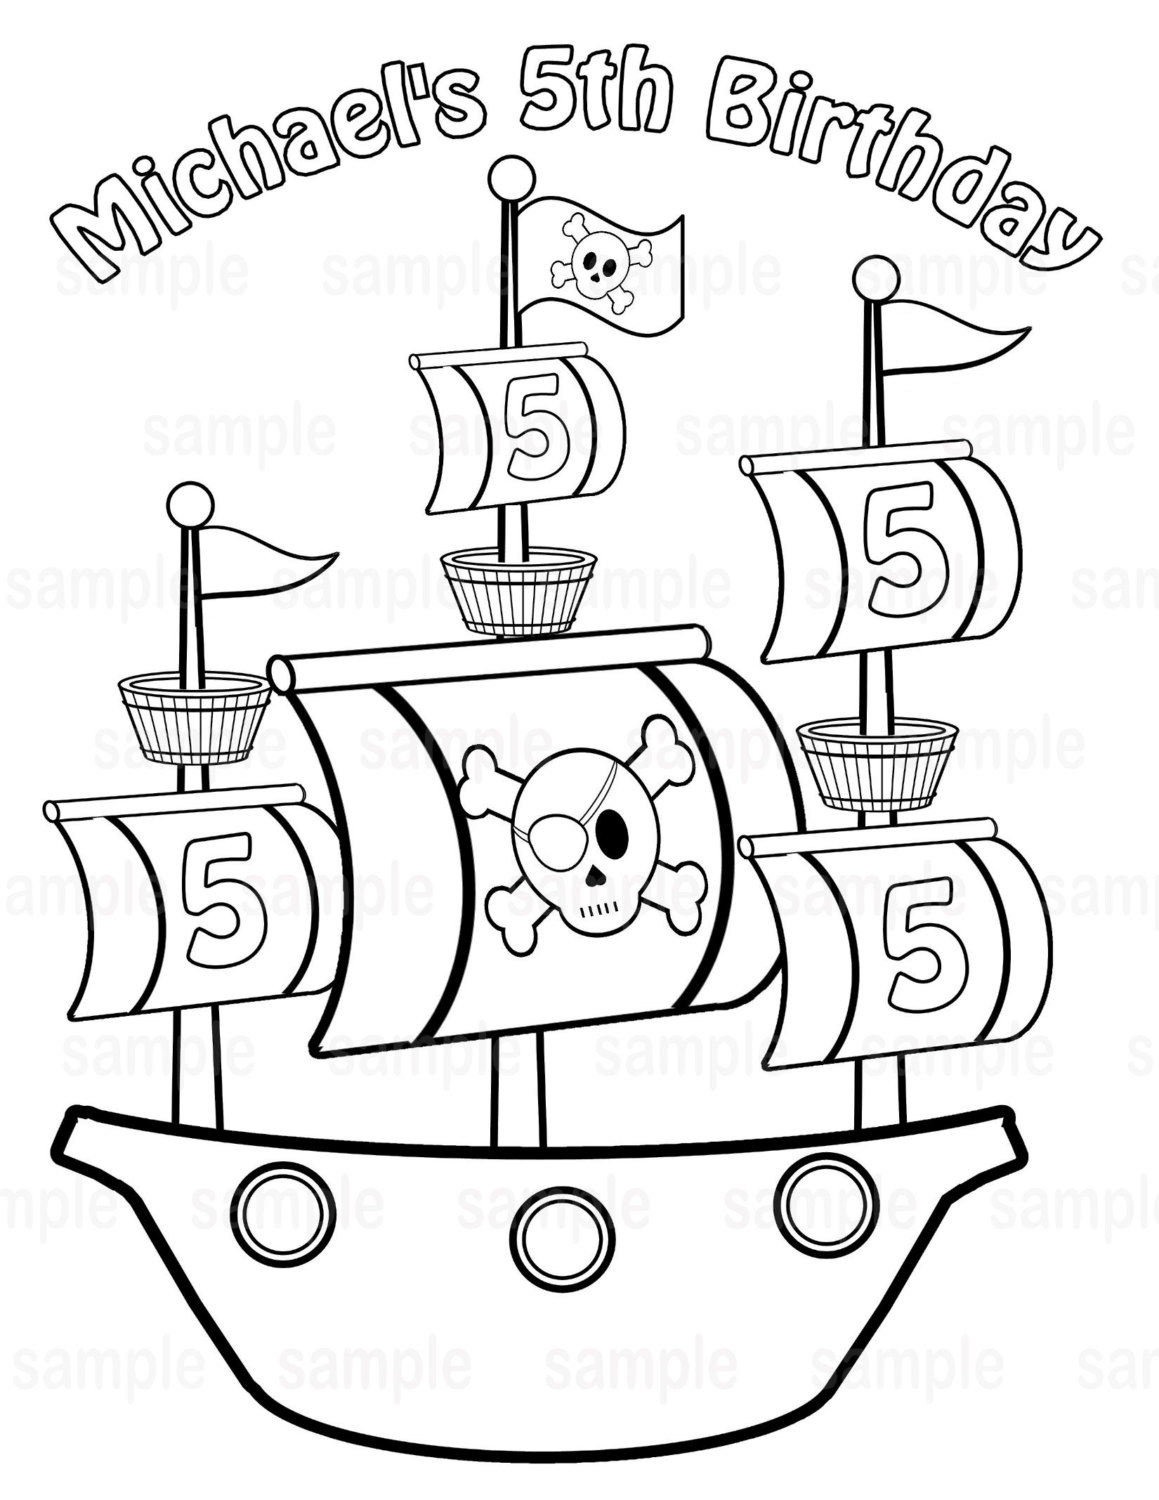 pirate ship line drawing at getdrawings com free for personal use